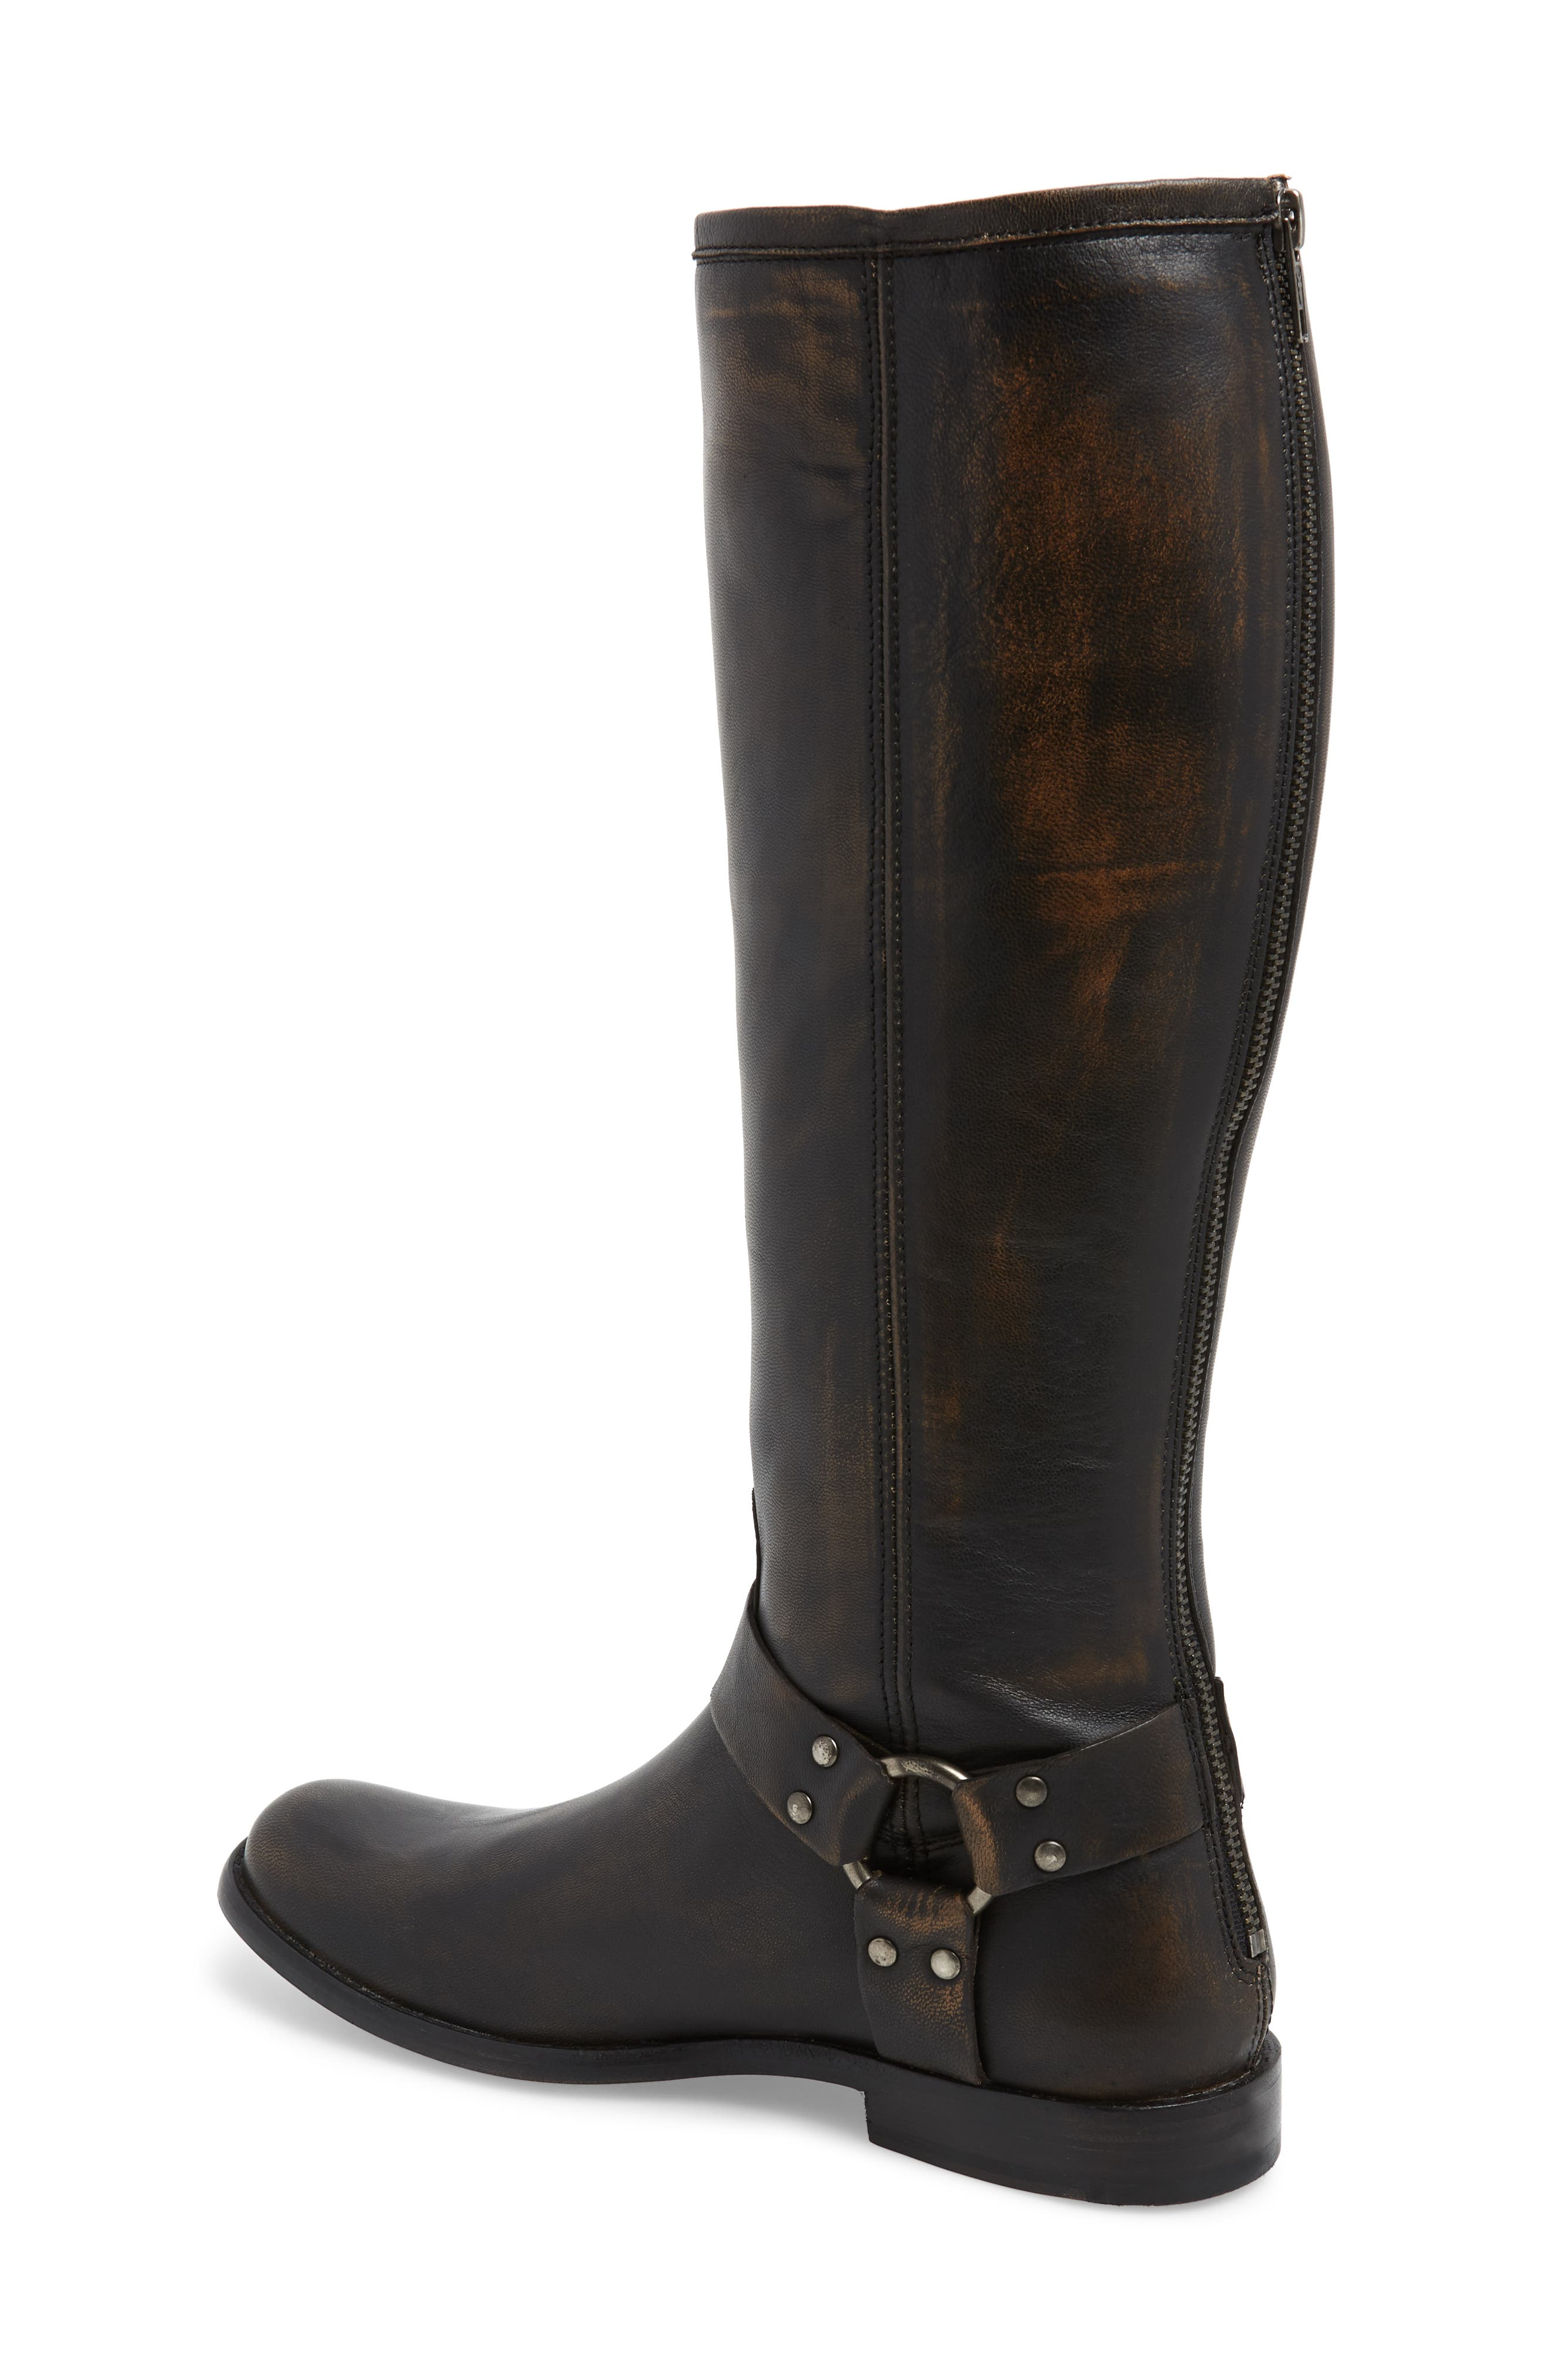 Phillip Harness Tall Boot,                             Alternate thumbnail 2, color,                             DARK BROWN LEATHER